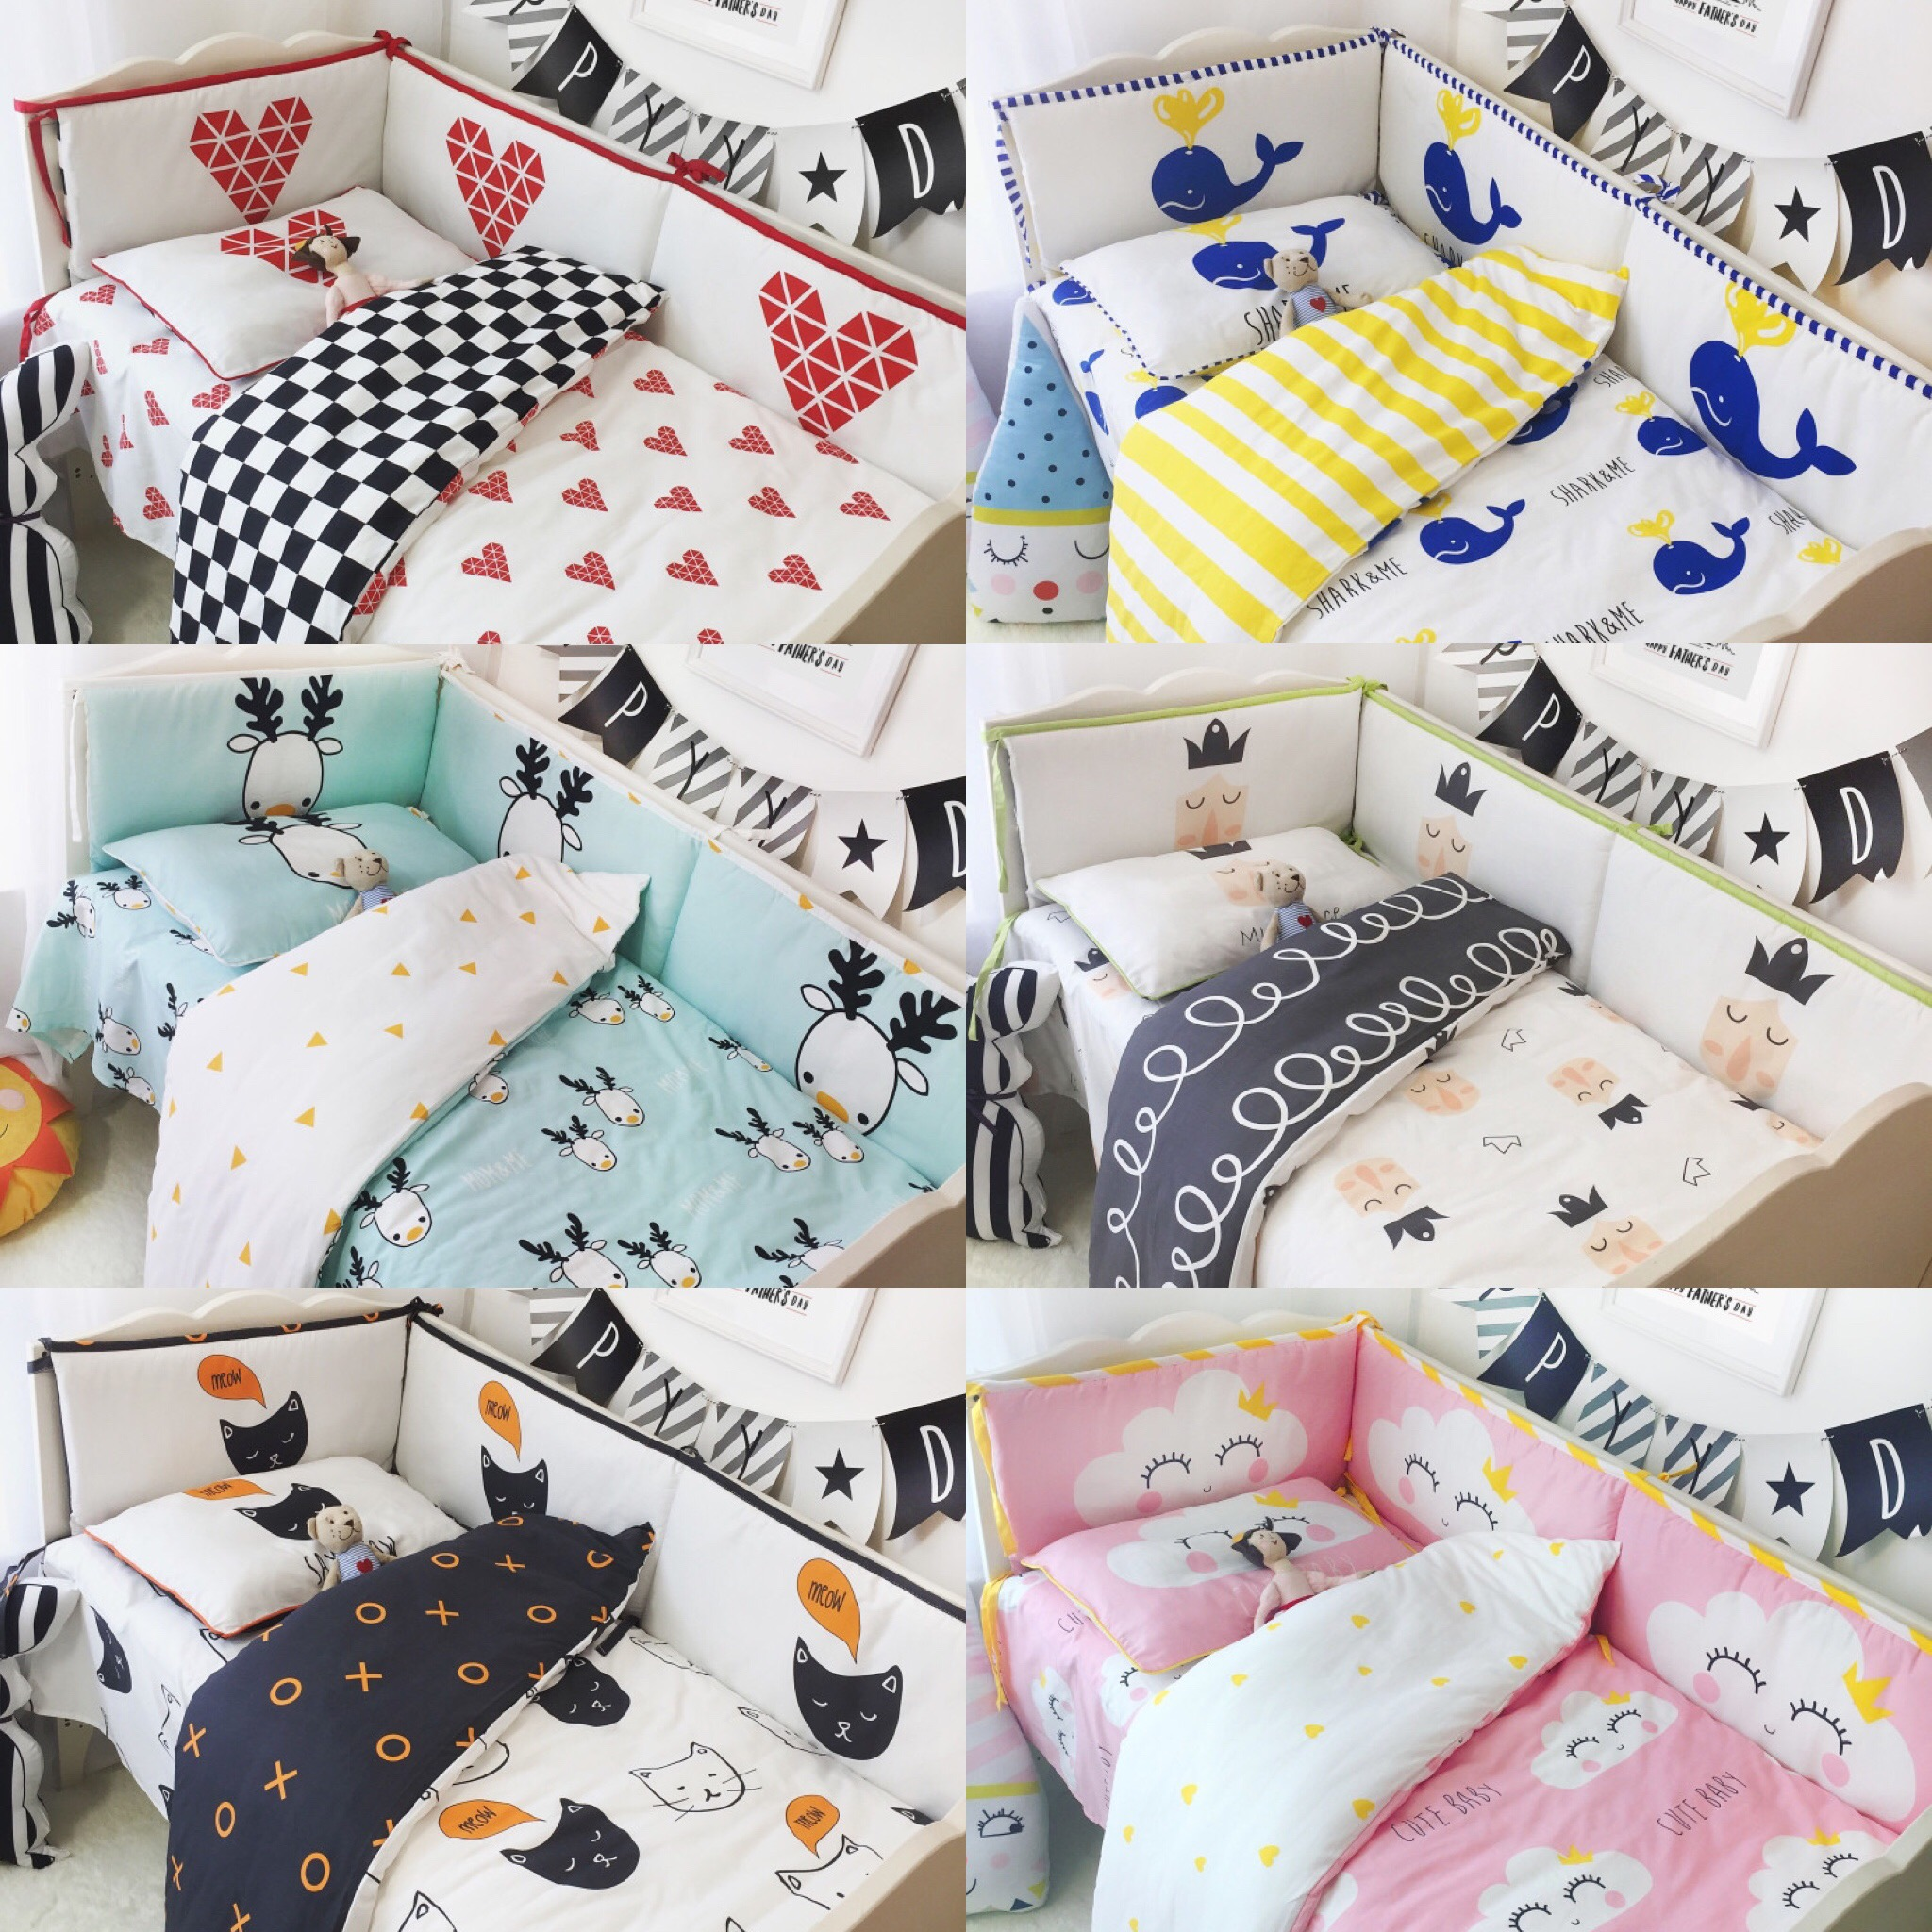 7pcs / Set Ins Baby Bedding Cotton Baby Bedding Cot Set  Bumper Baby Cot Sets Bed Around Protector Pink Clouds Deer Whale Crown